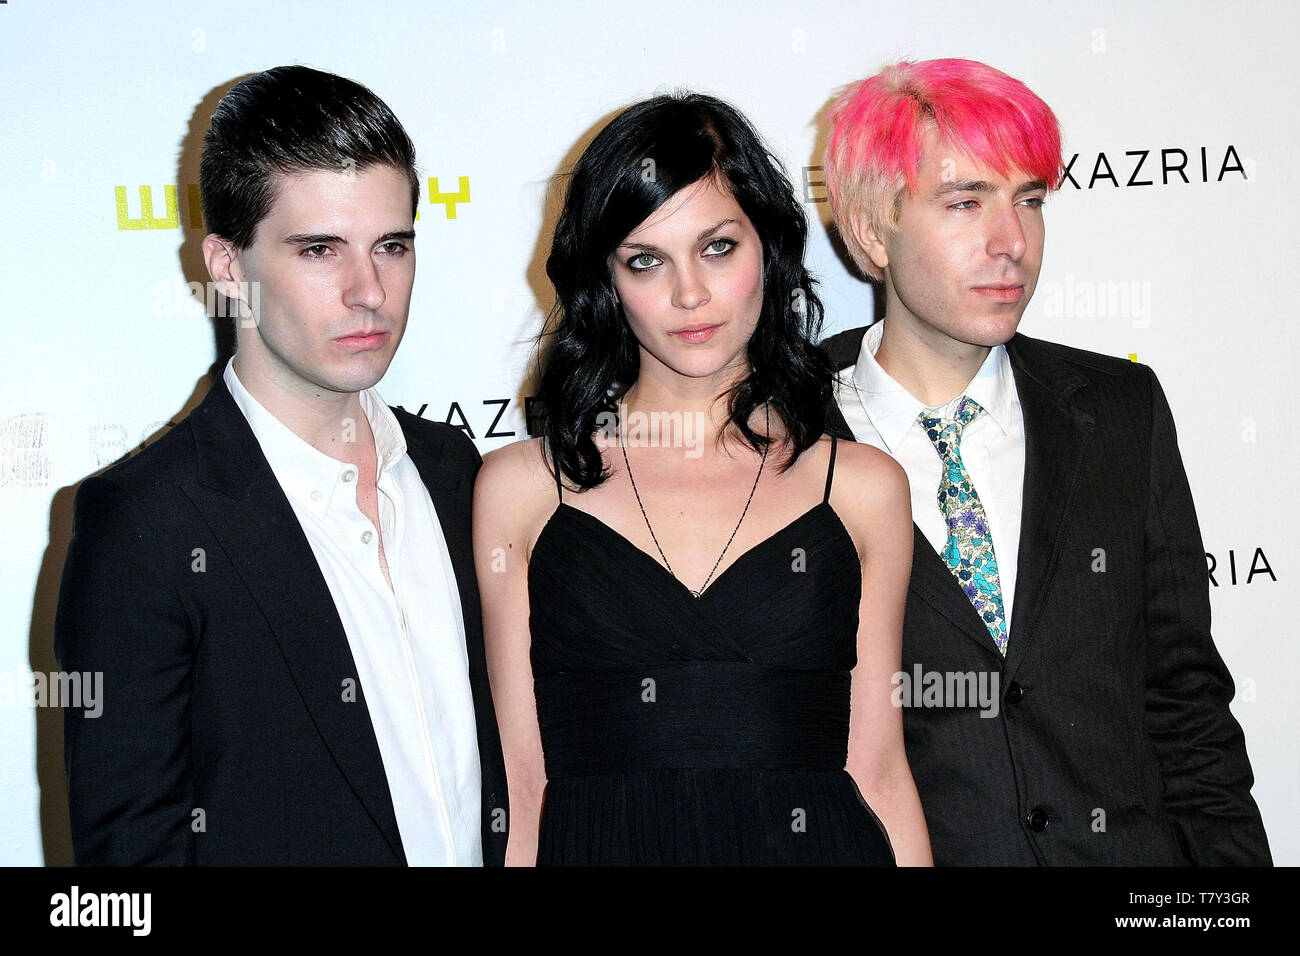 New York, USA. 6 June, 2007. Greg. K, Leigh Lezark, Geordon Nicol at the Fifth Annual Art Party Celebrating The Whitney Museum Of American Art at The IFC Center. Credit: Steve Mack/Alamy - Stock Image